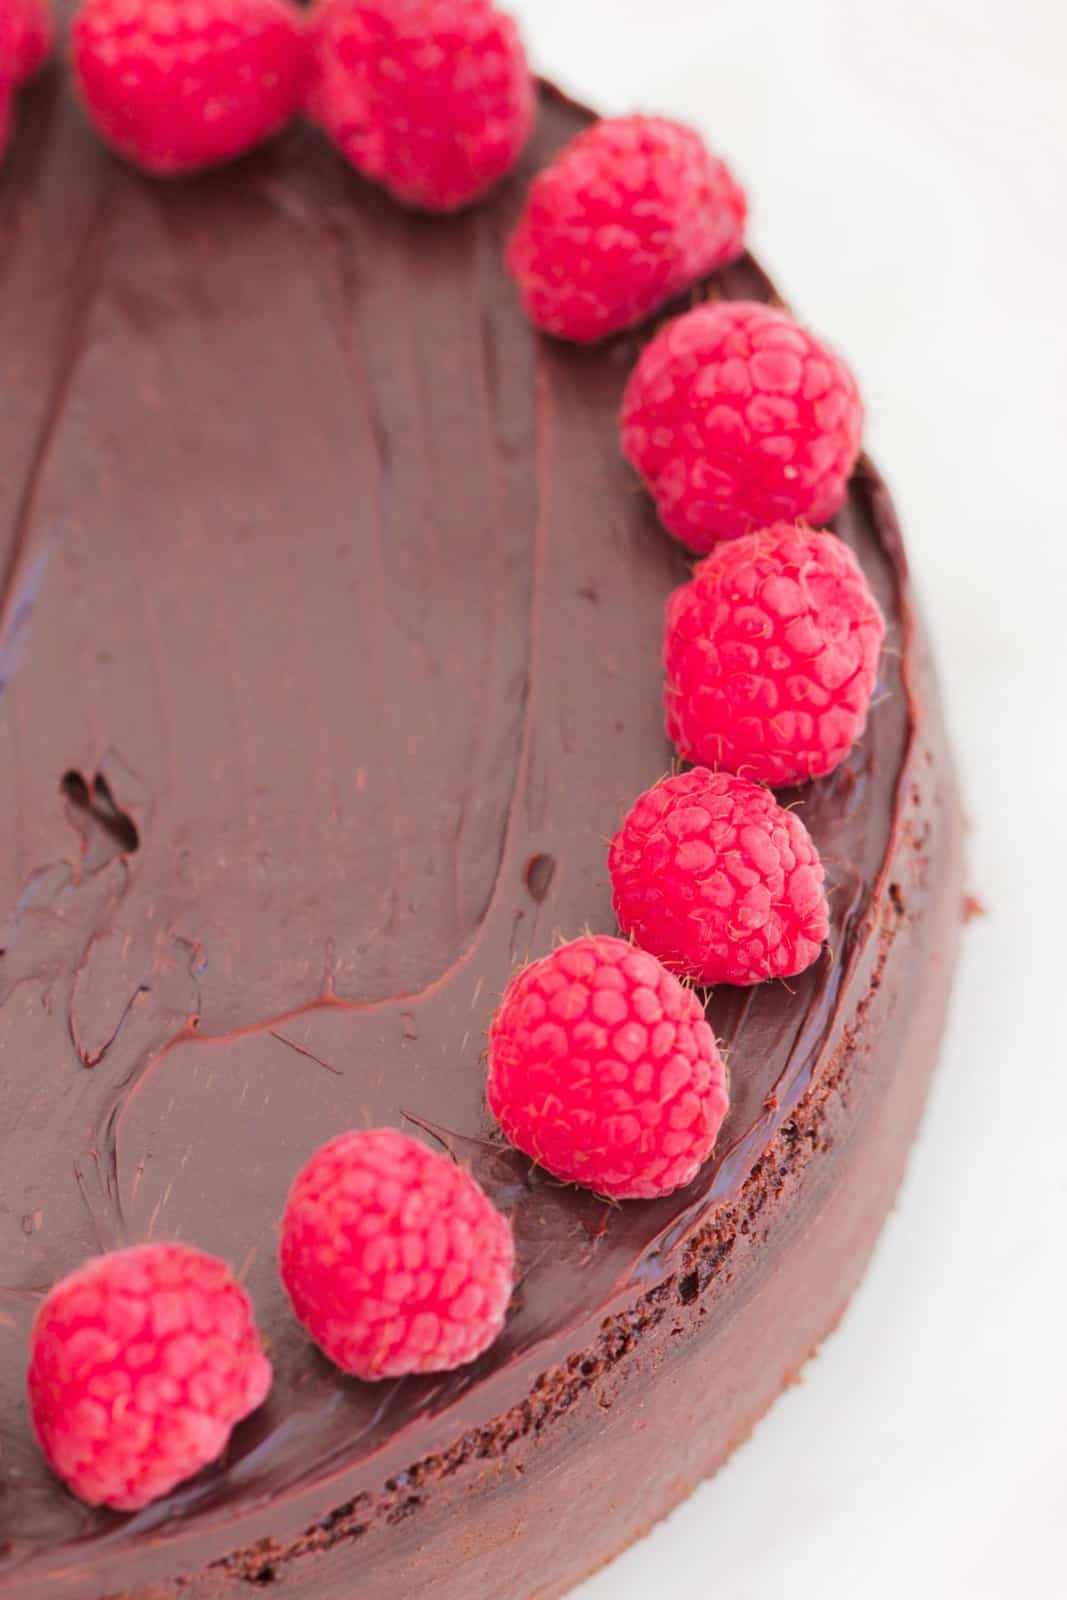 An overhead shot of a chocolate cake covered with ganache and fresh raspberries.